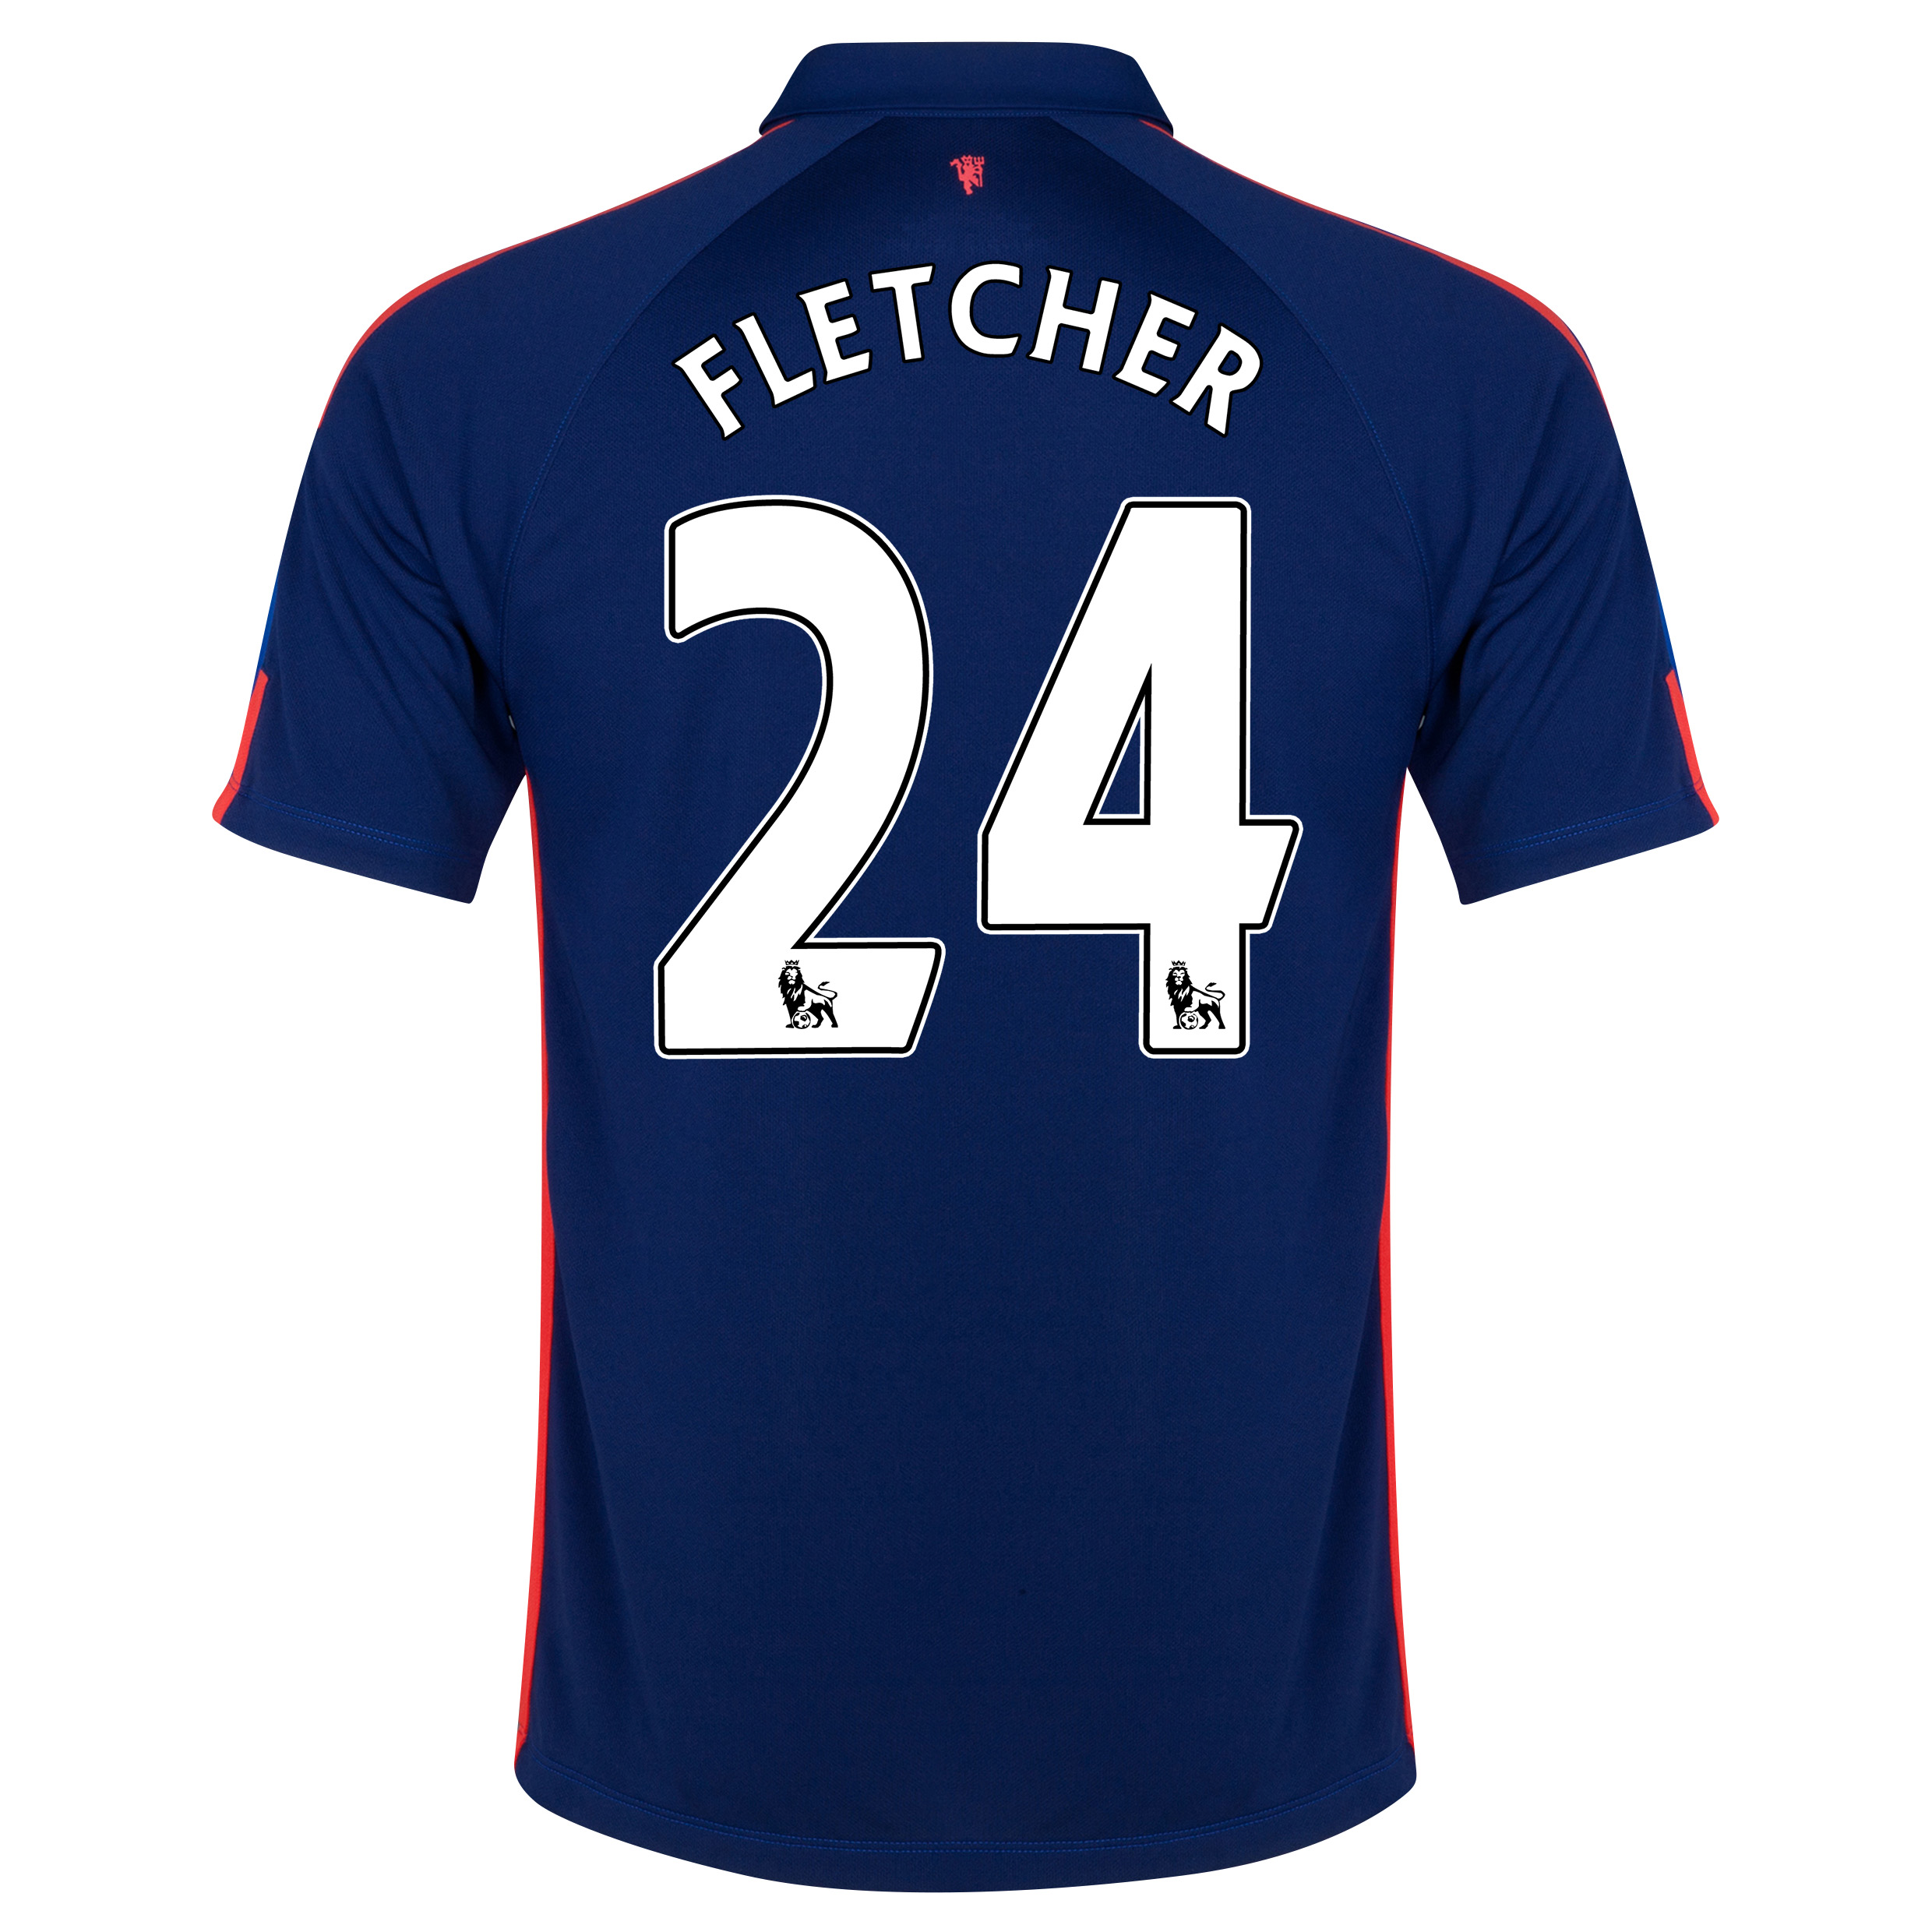 Manchester United Third Shirt 2014/15 with Fletcher 24 printing